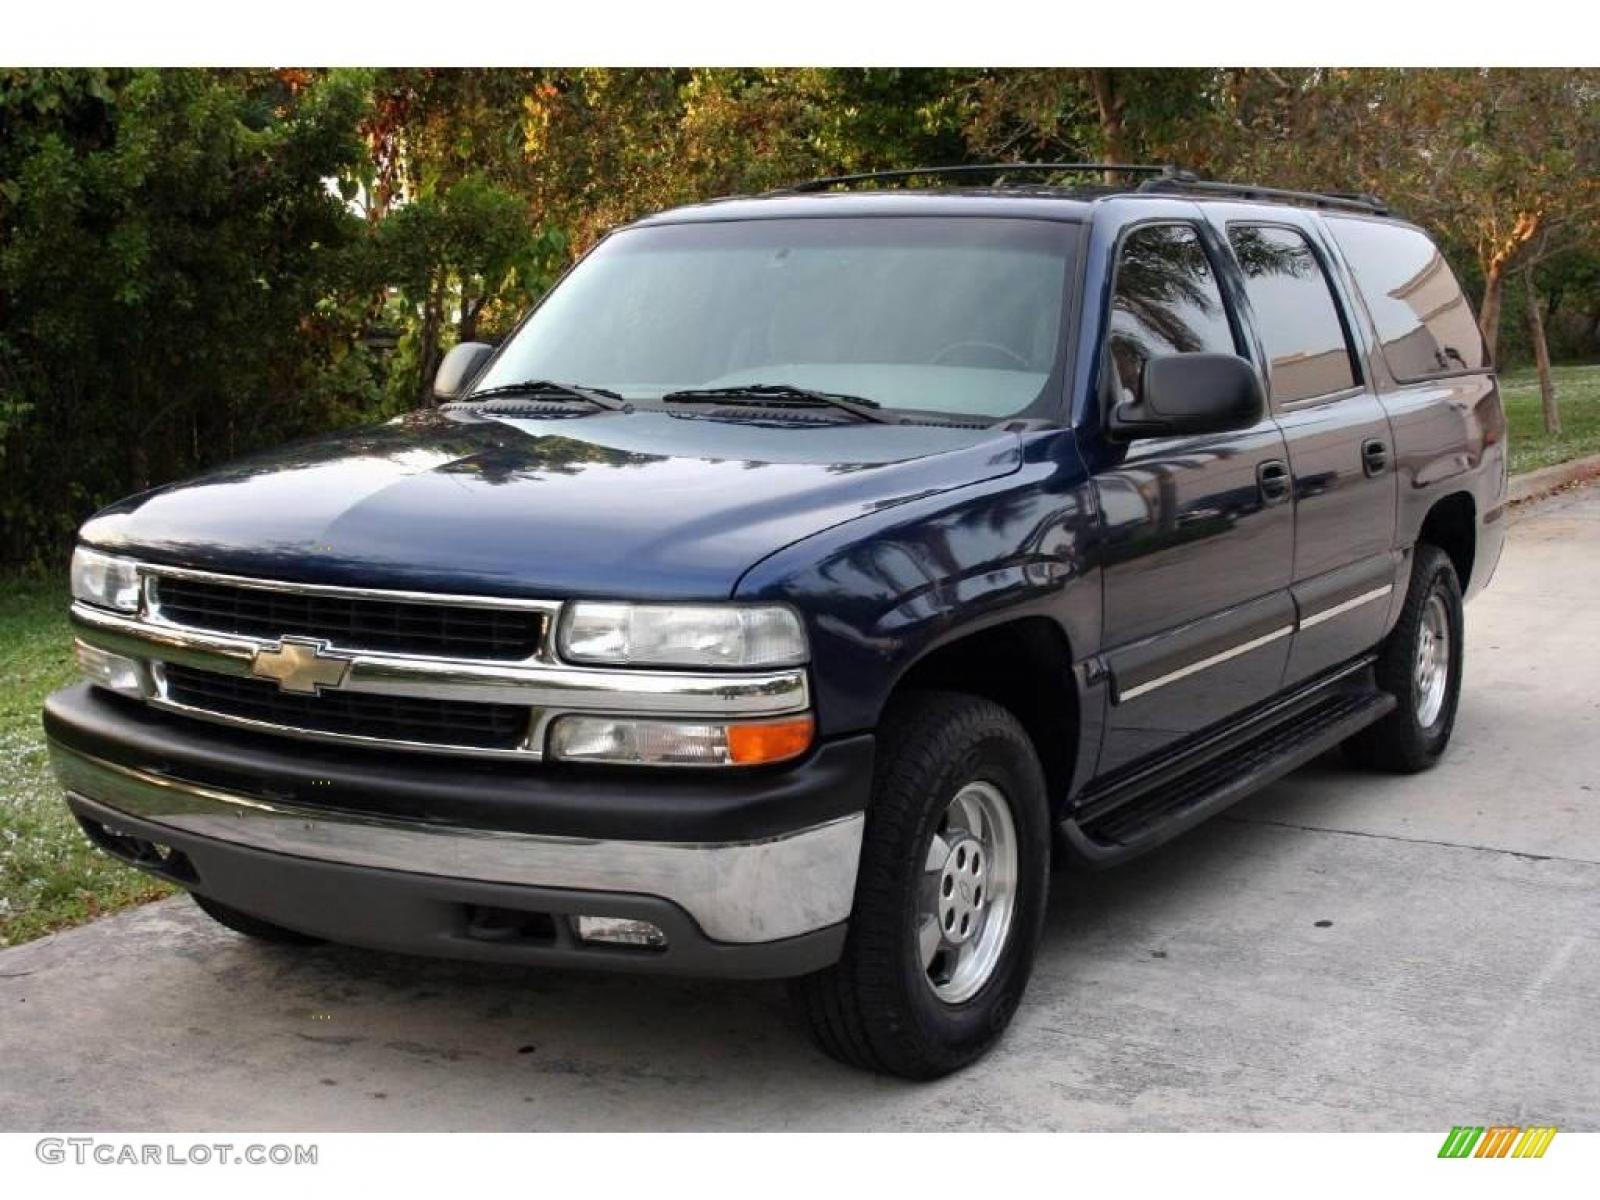 2002 chevrolet suburban information and photos zombiedrive. Black Bedroom Furniture Sets. Home Design Ideas